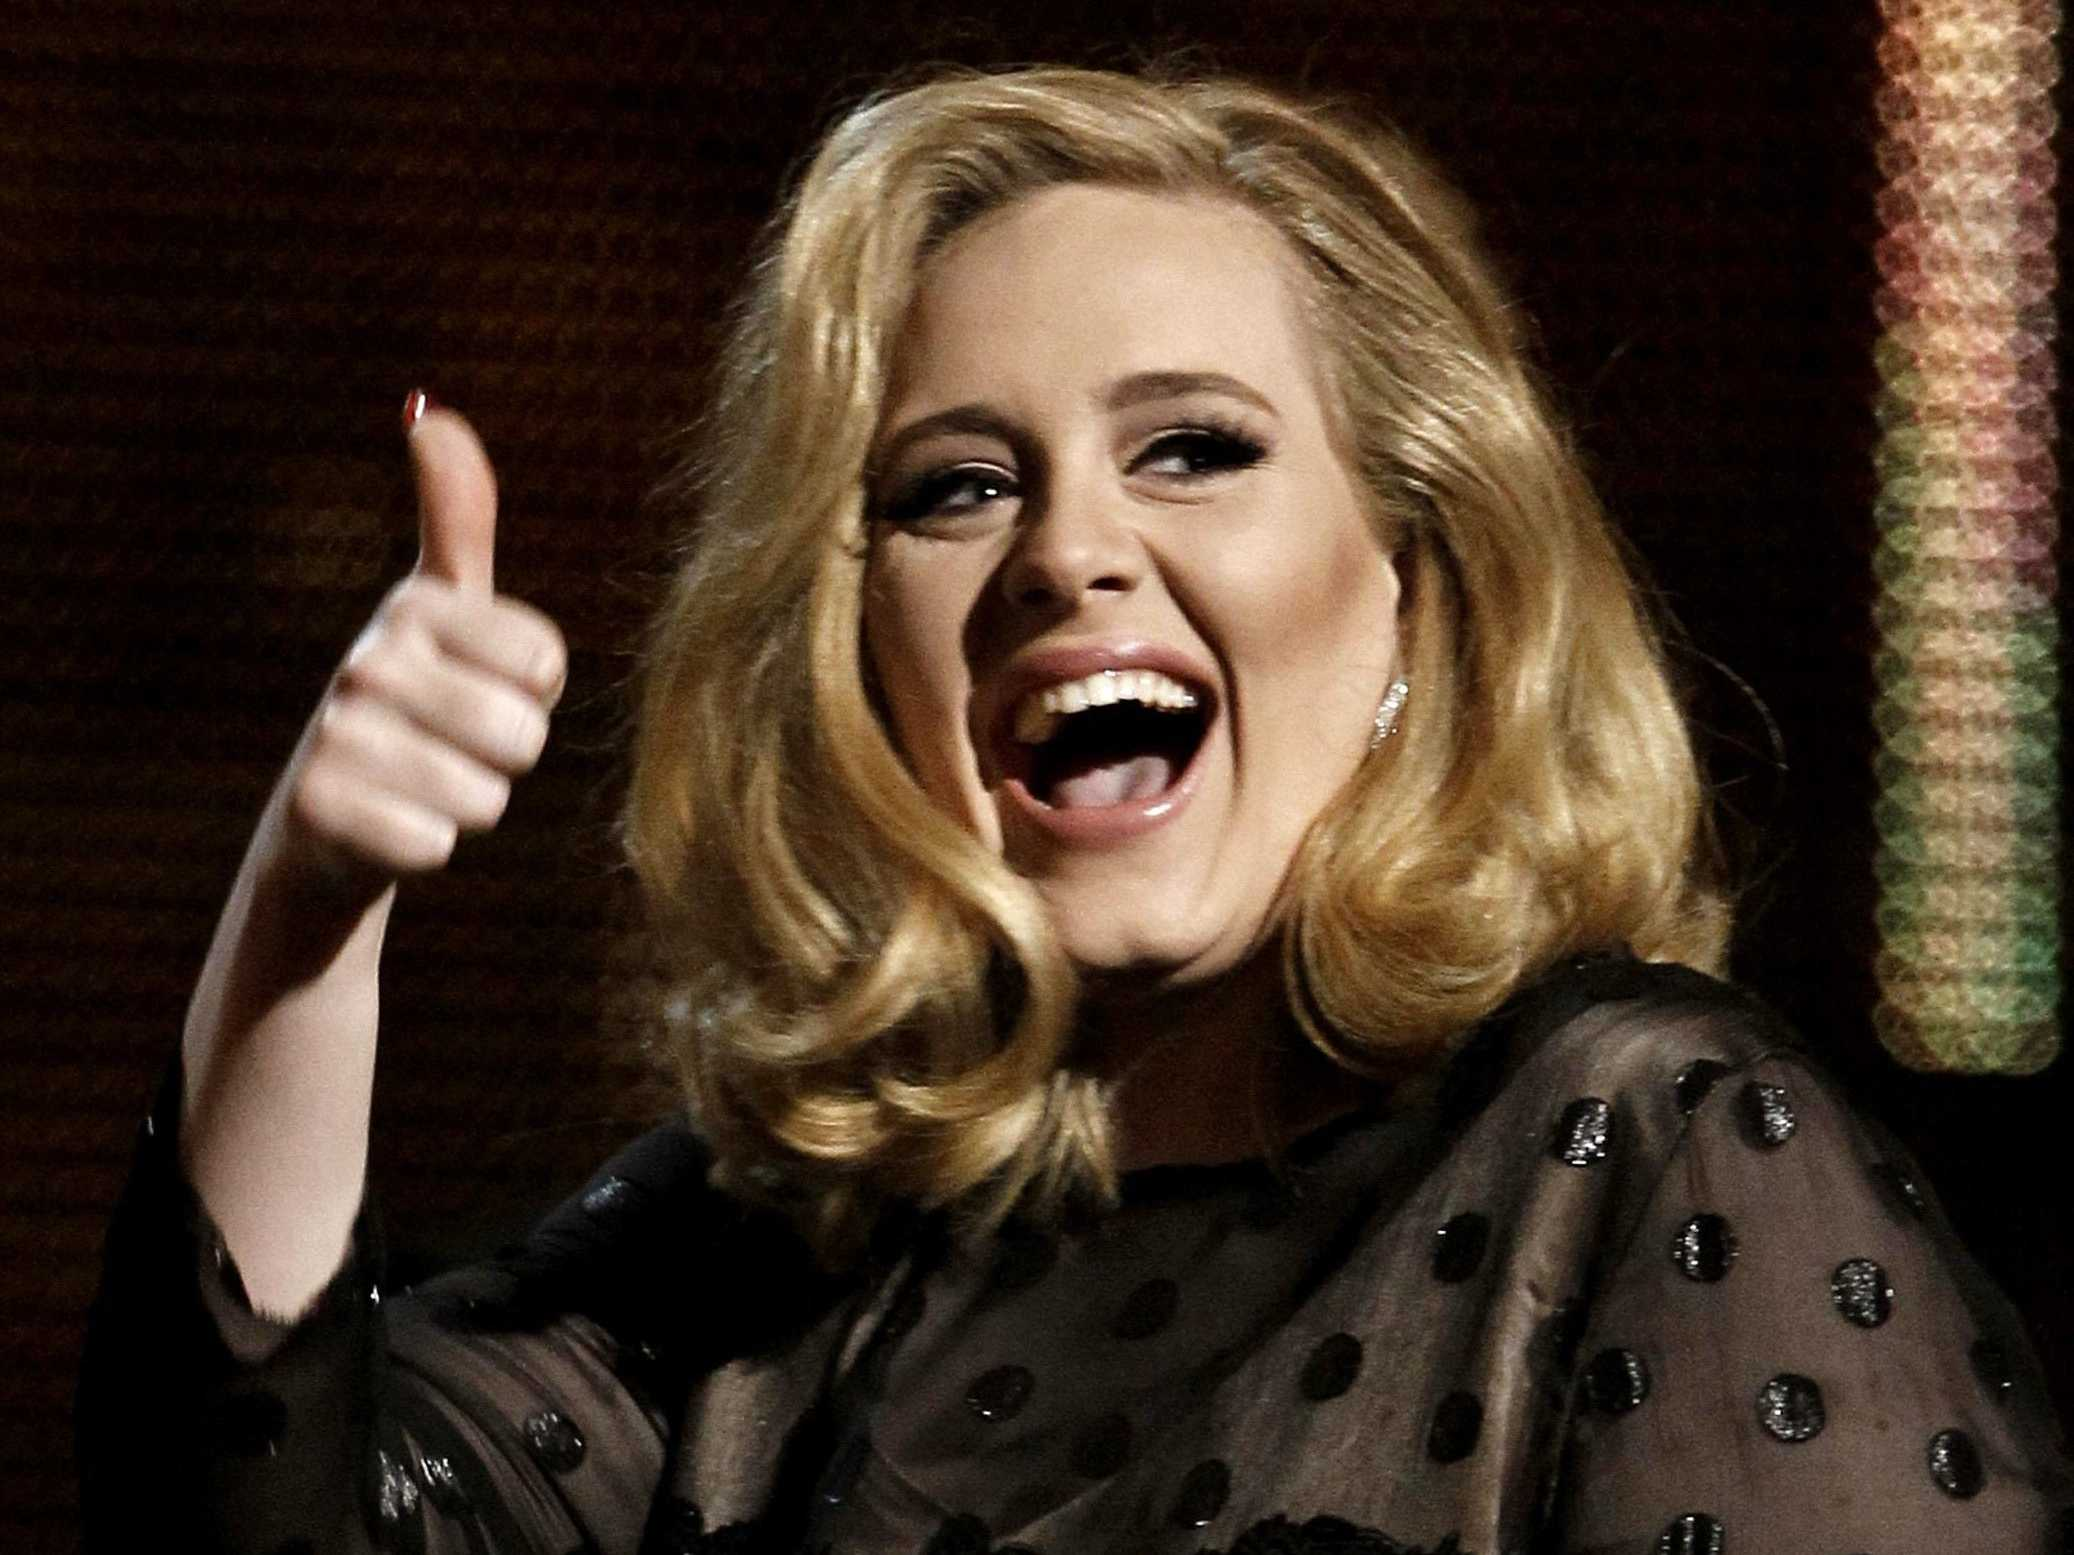 Adele Becomes The First Artist To Sell 1M Downloads In A Week